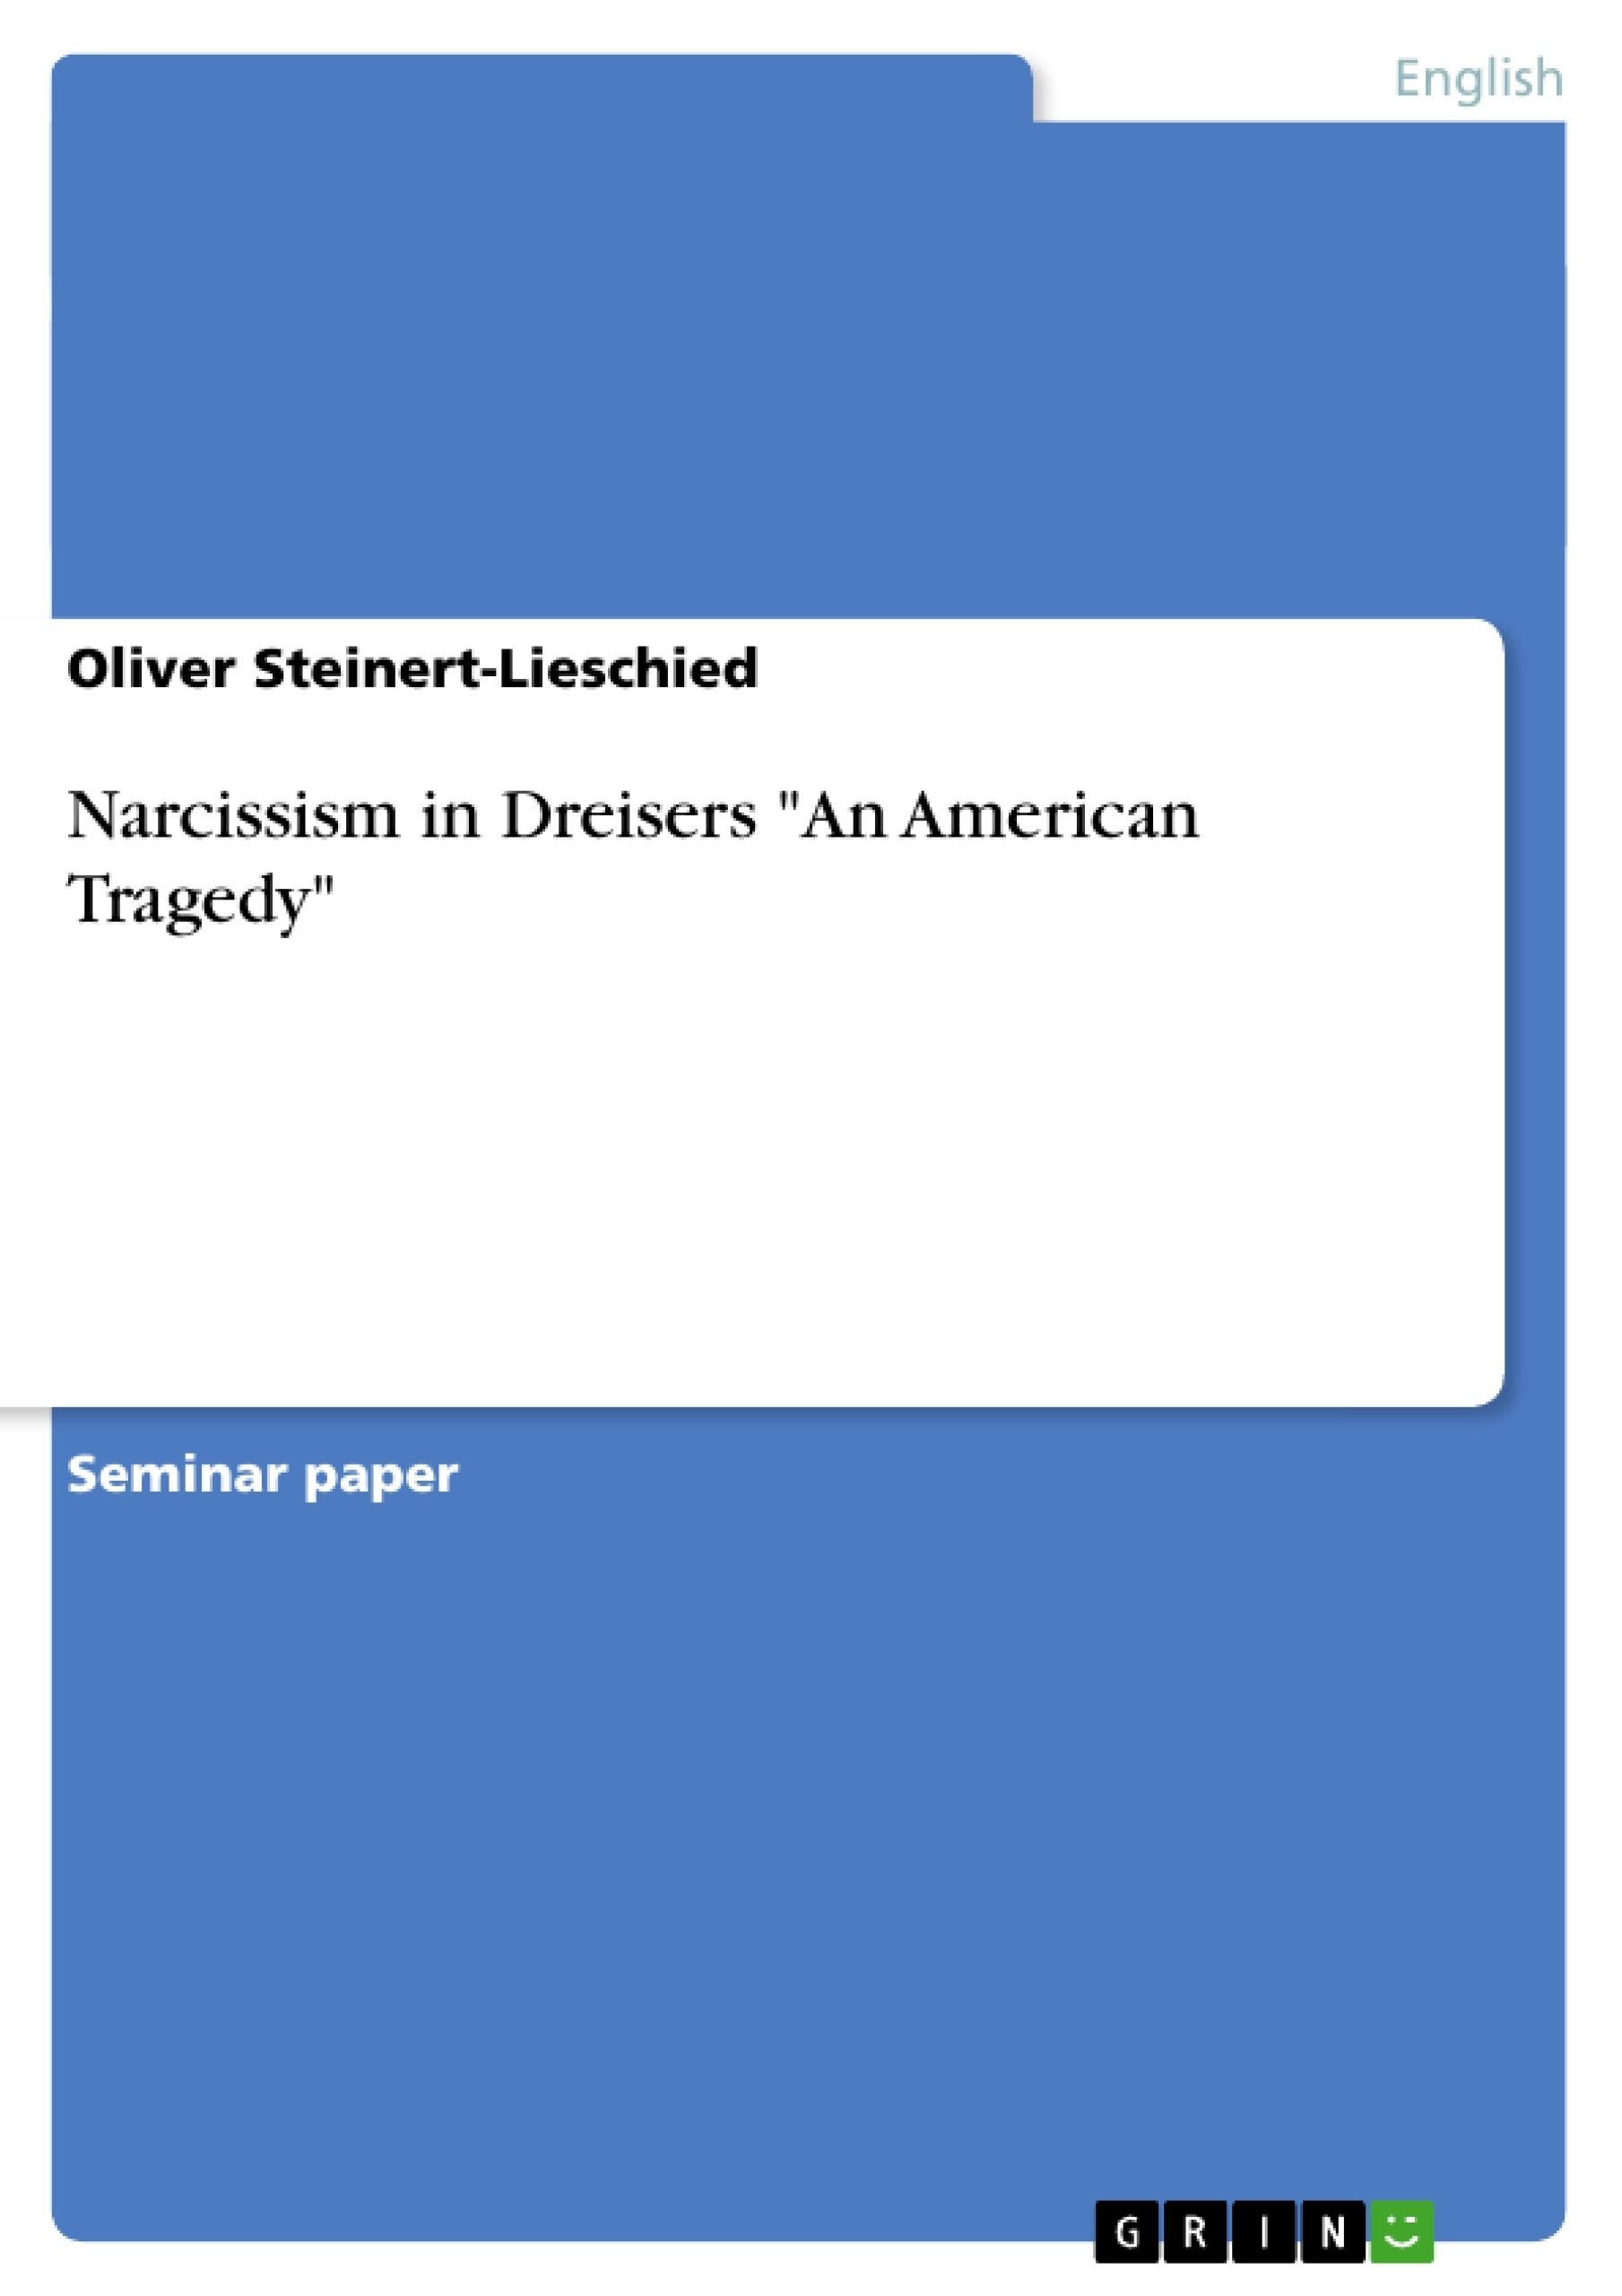 """Title: Narcissism in Dreisers """"An American Tragedy"""""""